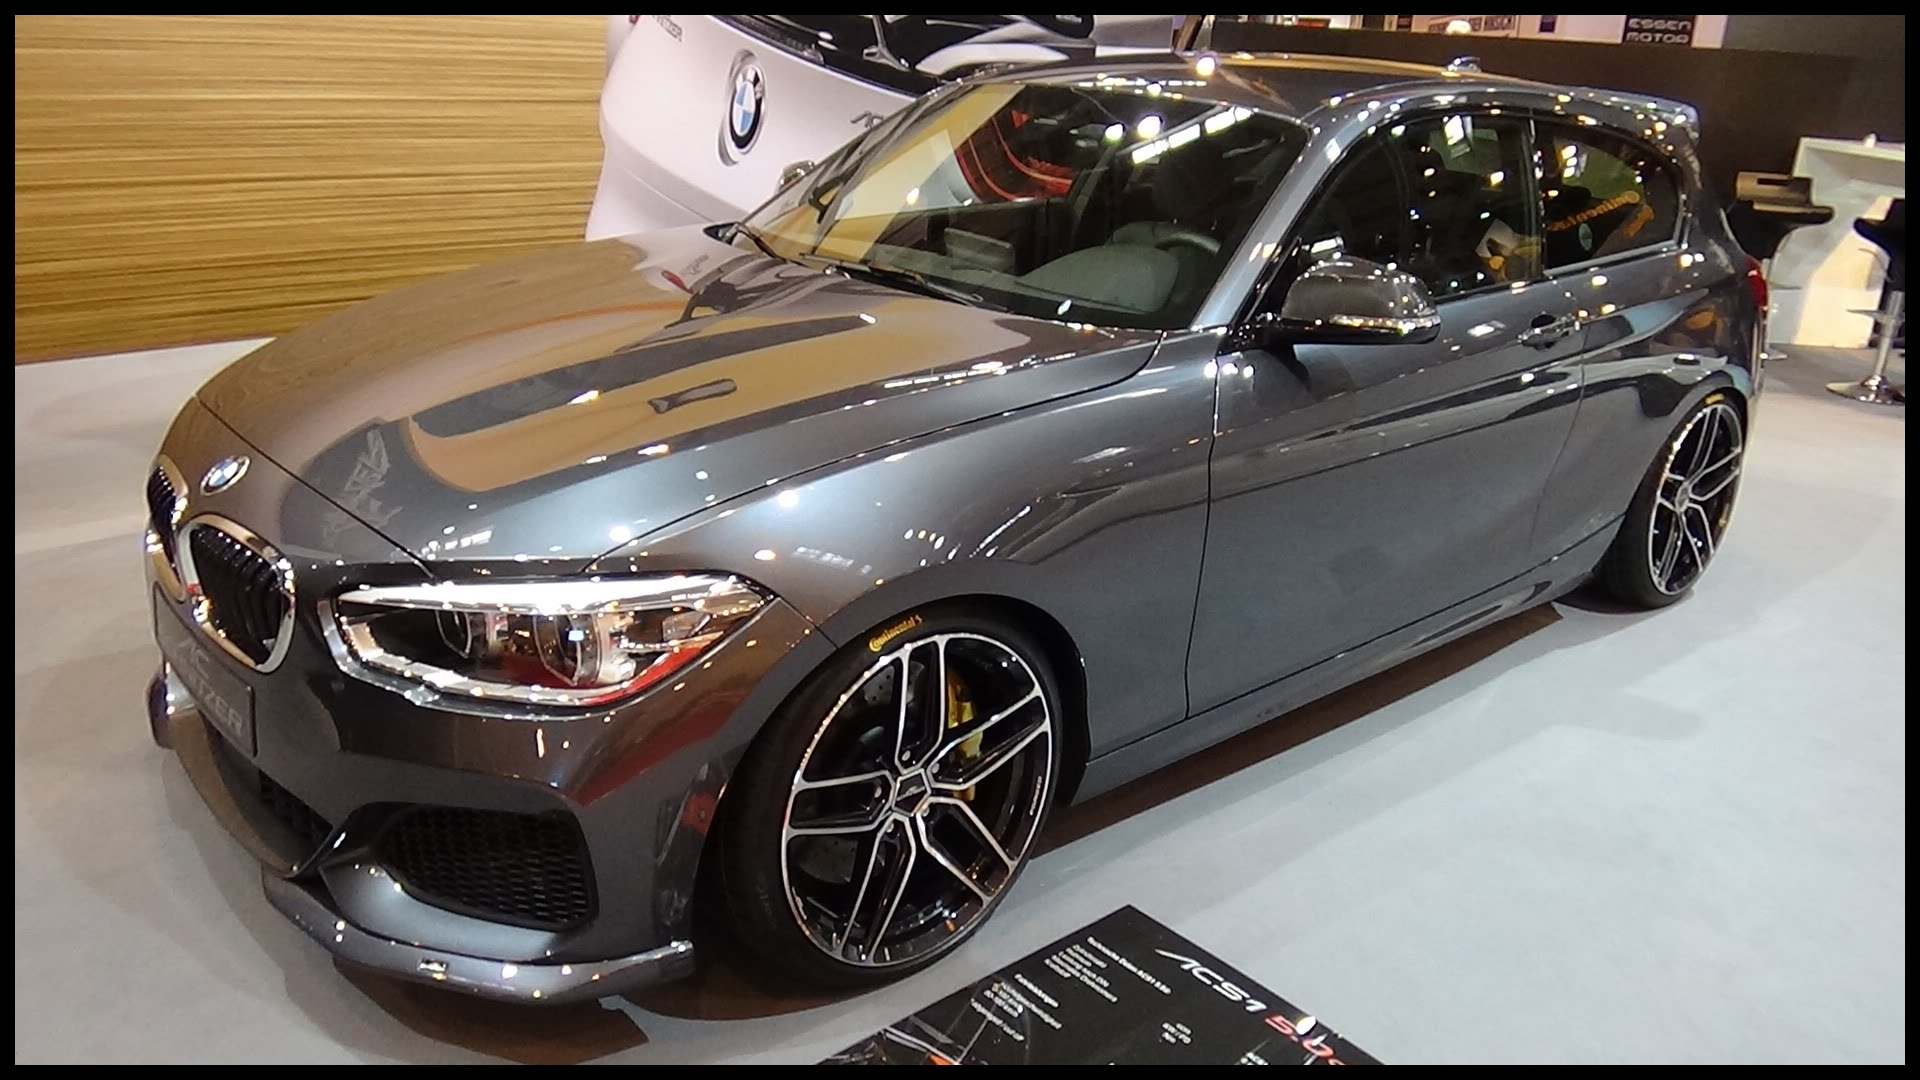 Bmw Rim Styles 2016 Bmw Acs1 5 0d by Ac Schnitzer Exterior and Interior Essen